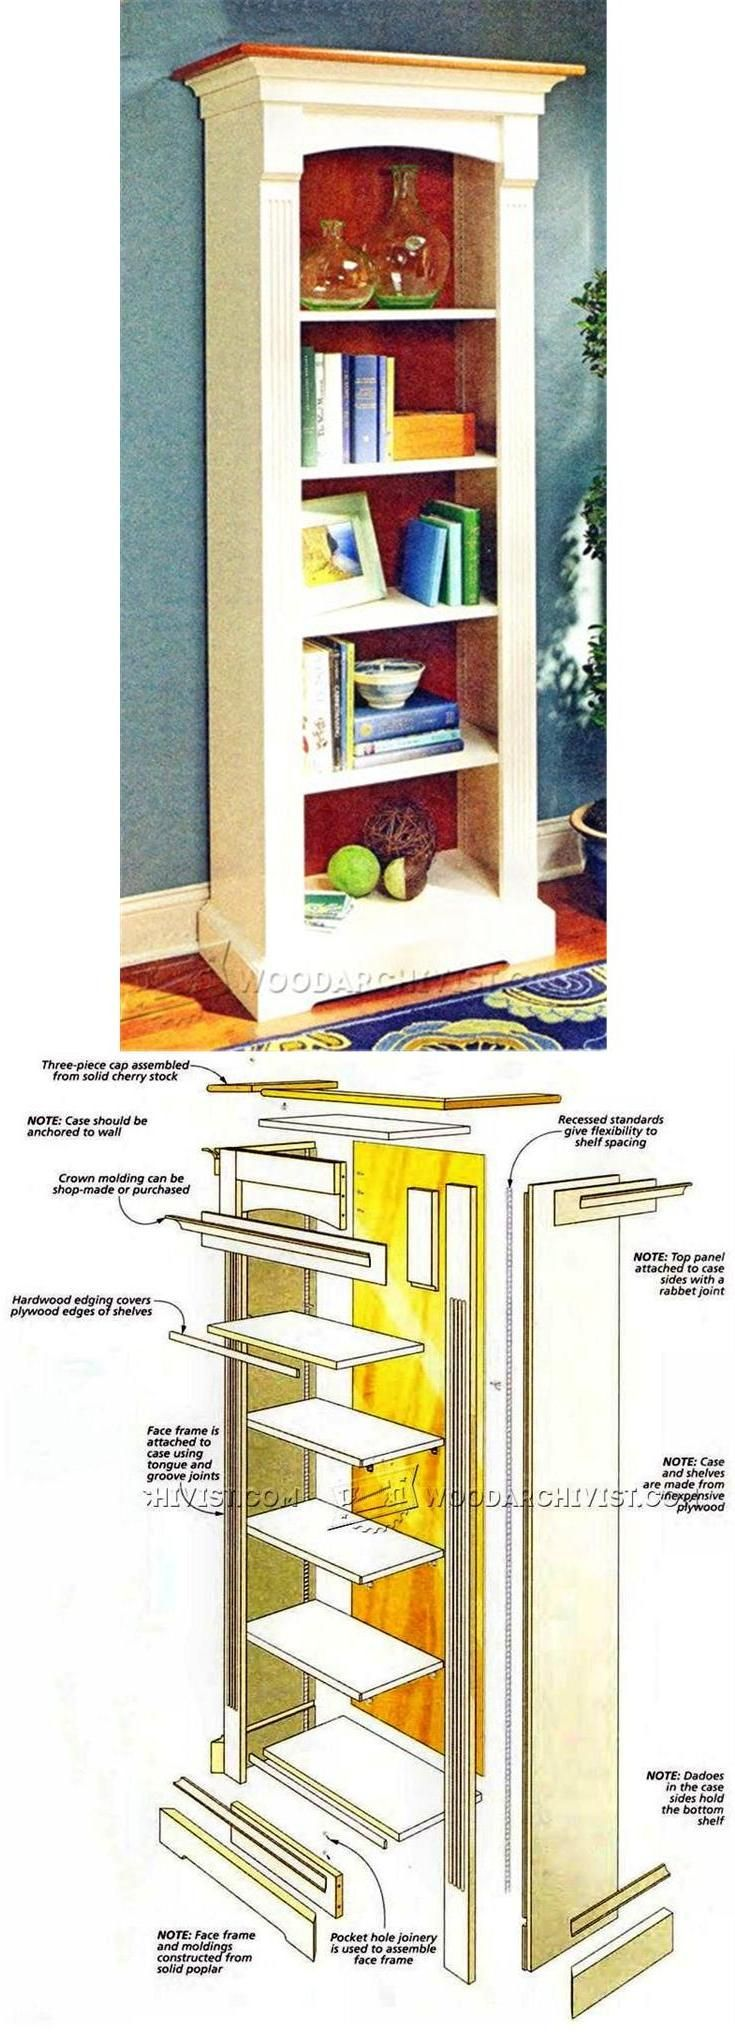 Tower Bookcase Plans - Furniture Plans and Projects | WoodArchivist.com